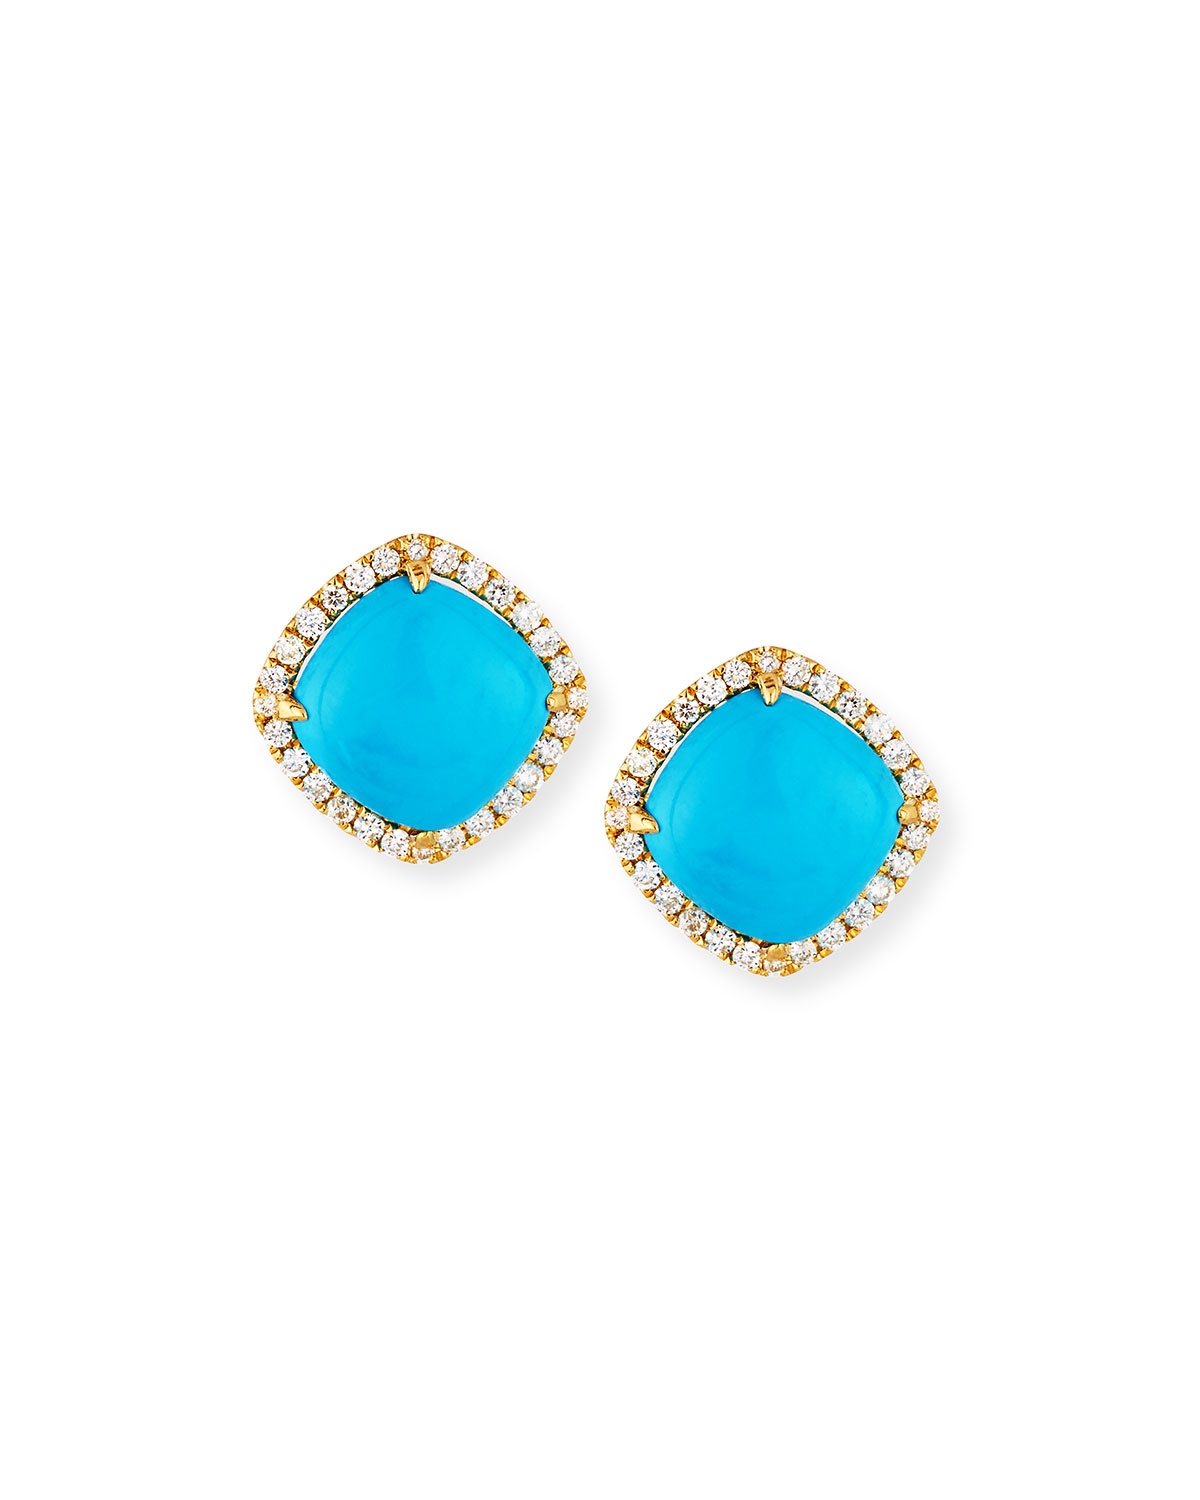 Frederic Sage 18k Gold Turquoise Diamond Stud Earrings Neiman